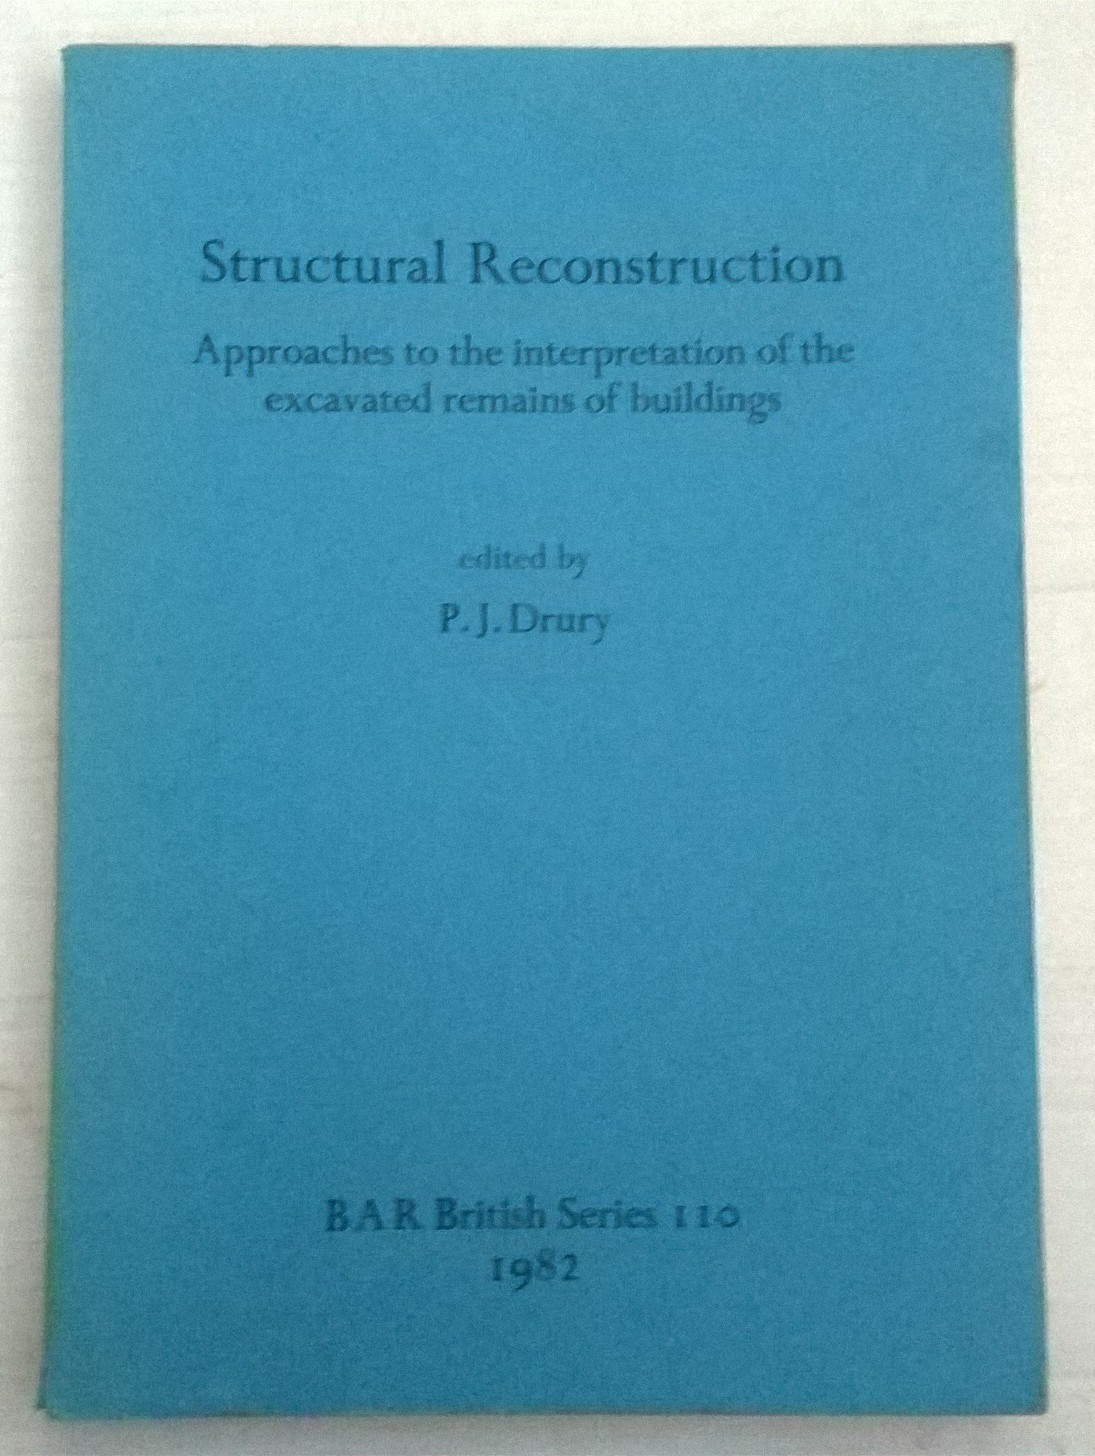 Structural Reconstruction :Approaches to the interpretation of the excavated remains of buildings, Drury, P. J. ;(ed)